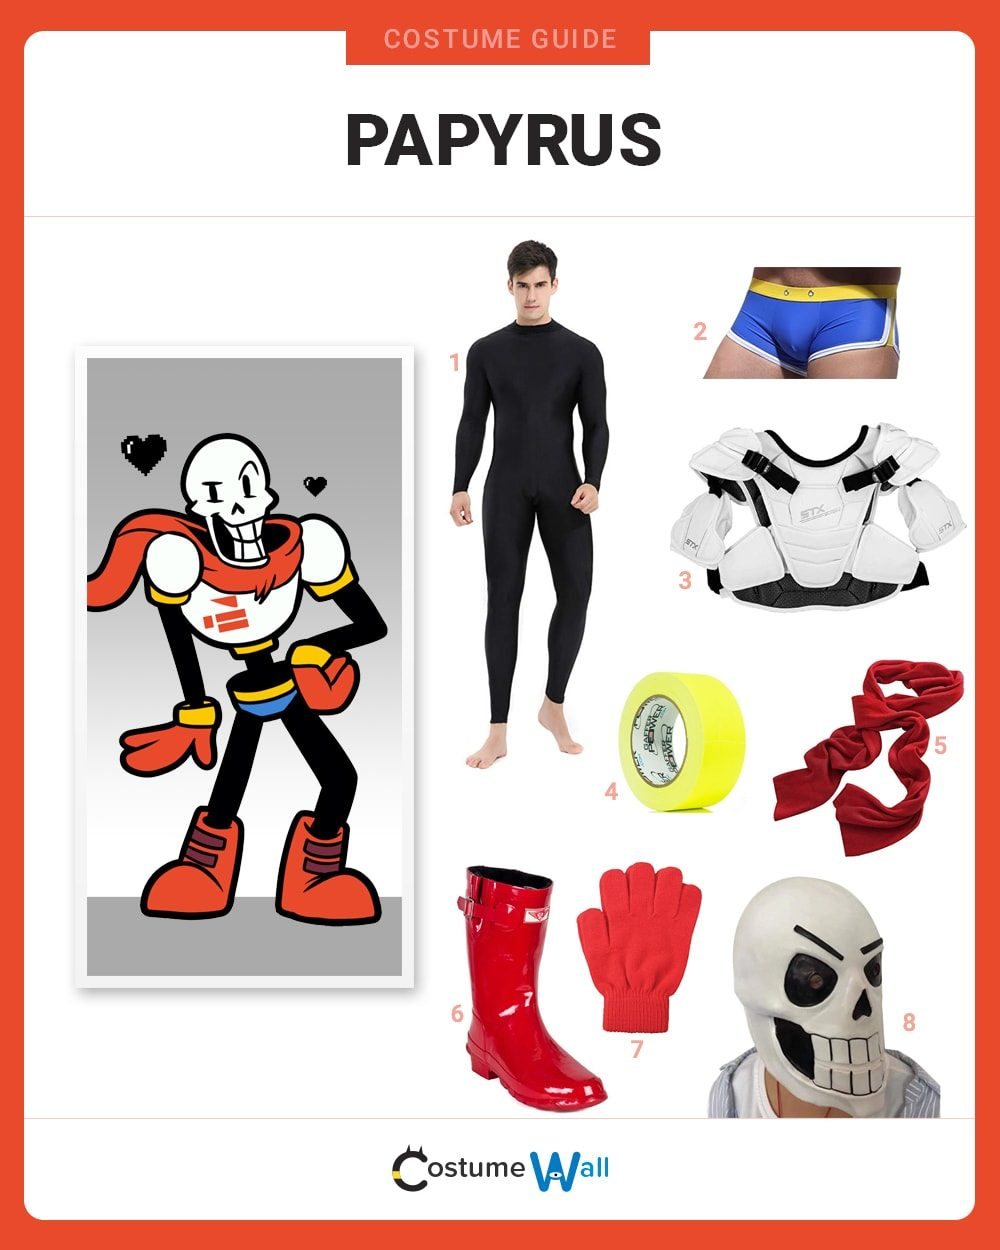 Papyrus Costume Guide